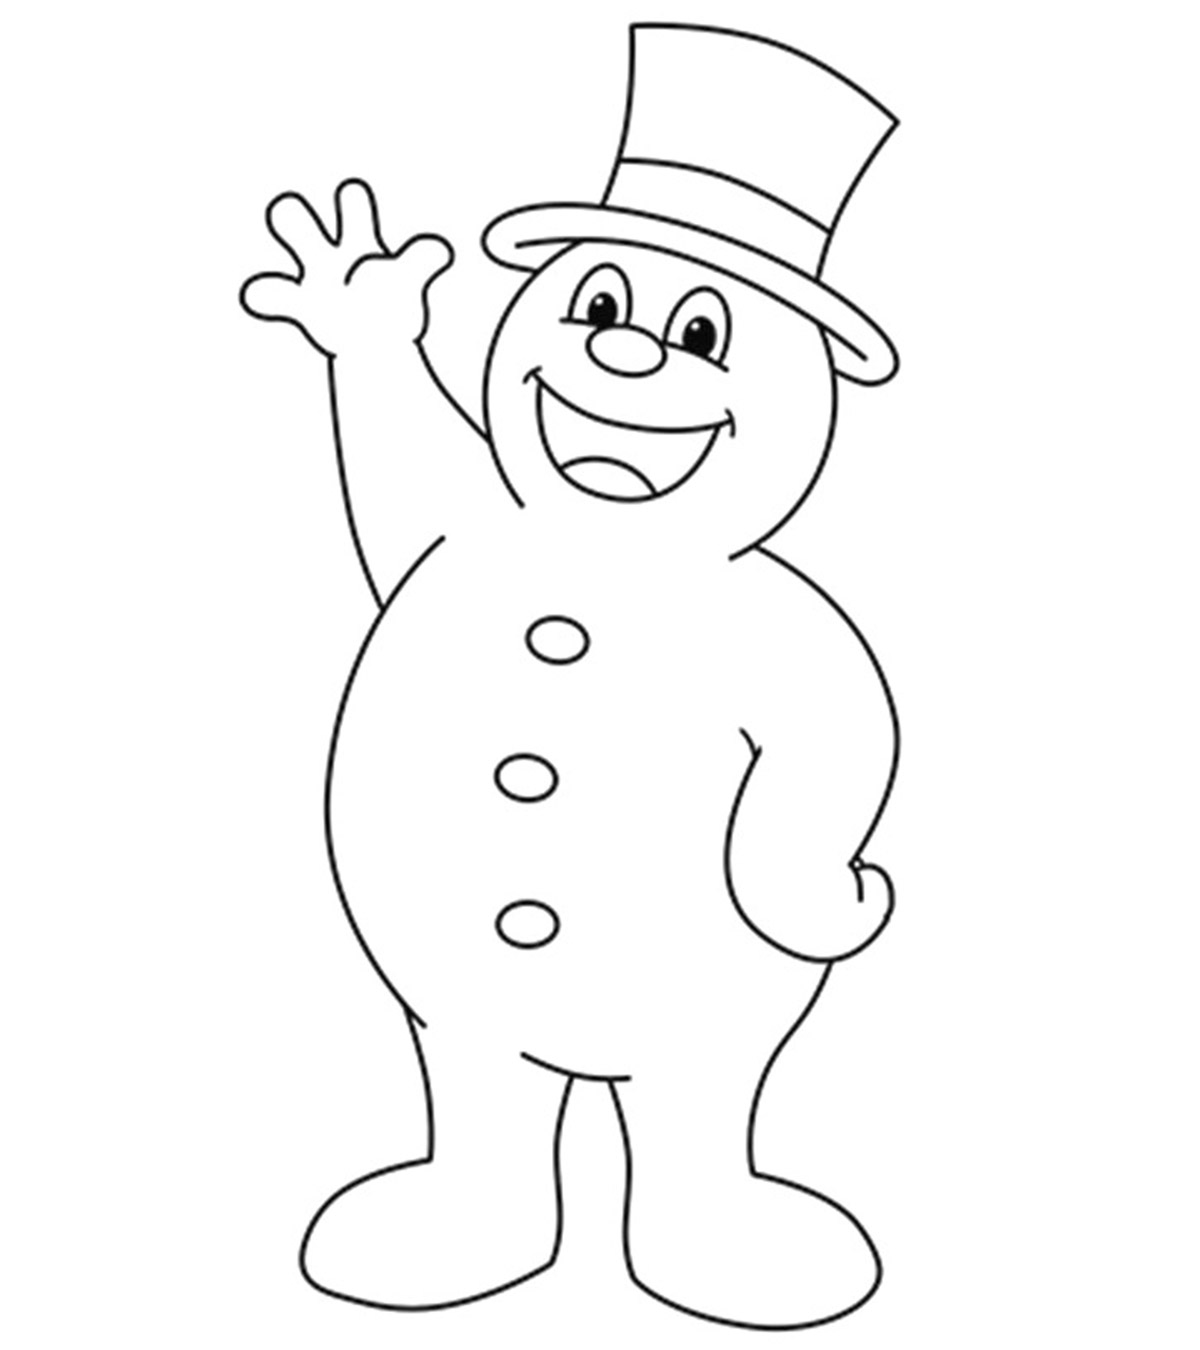 photograph about Frosty the Snowman Sheet Music Free Printable named 10 Adorable Frosty The Snowman Coloring Internet pages For Infants